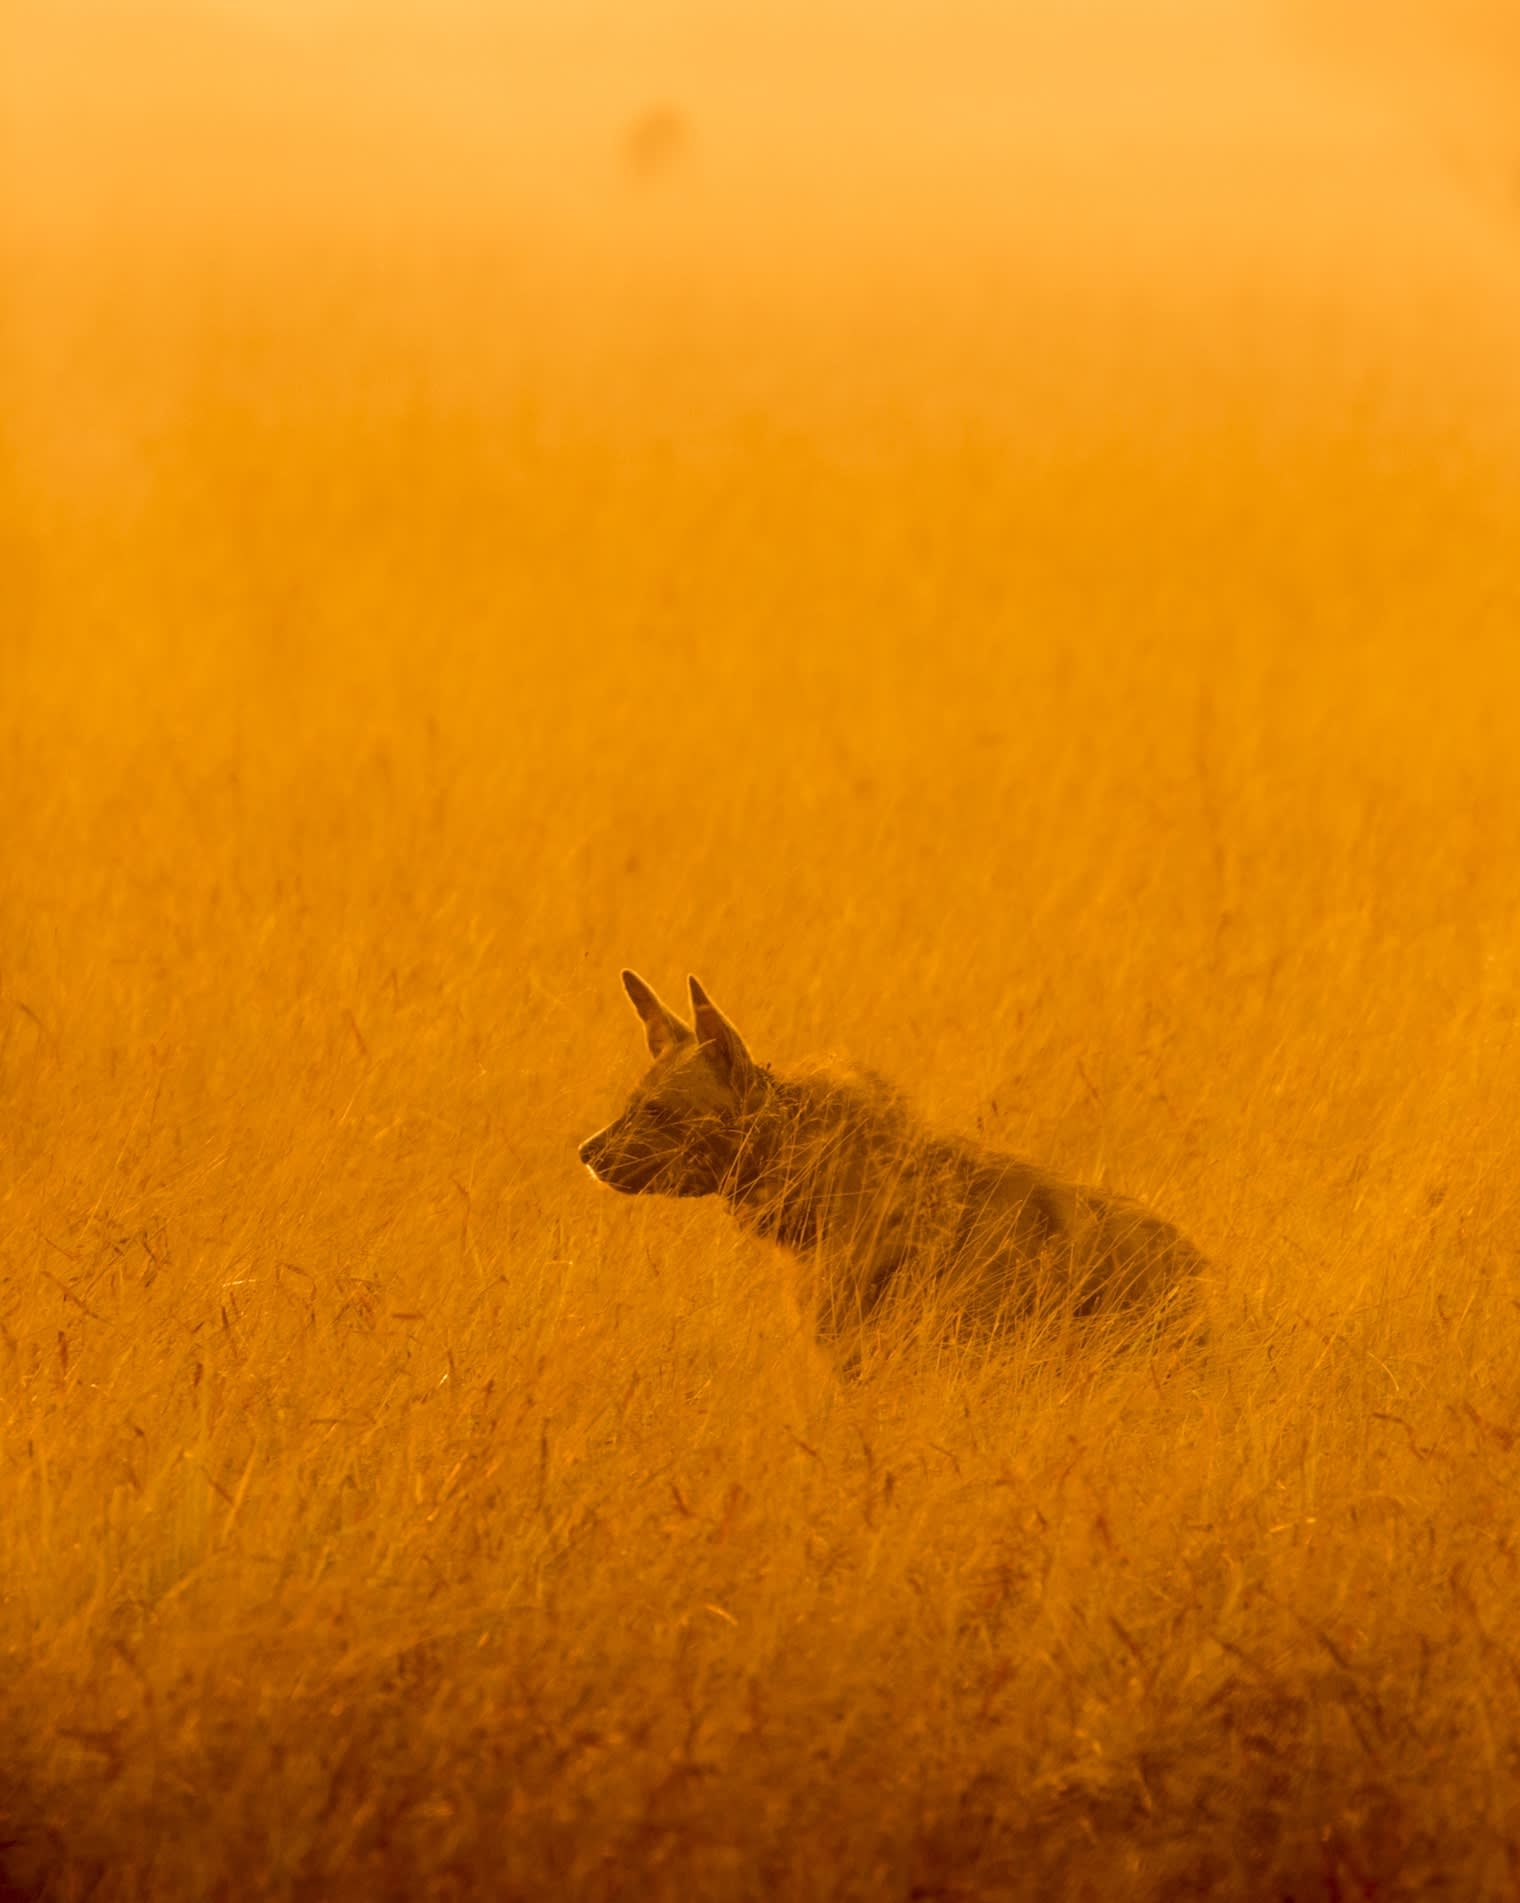 The striped hyena is a hardy survivor. For instance, in semi-arid and arid deserts, it can go without water for several days. Photo: Partha Pratim Kundu  Cover photo: When threatened, the striped hyena sticks up the mane on its back, making itself look larger and more intimidating. Cover photo: Vickey Chauhan/Shutterstock